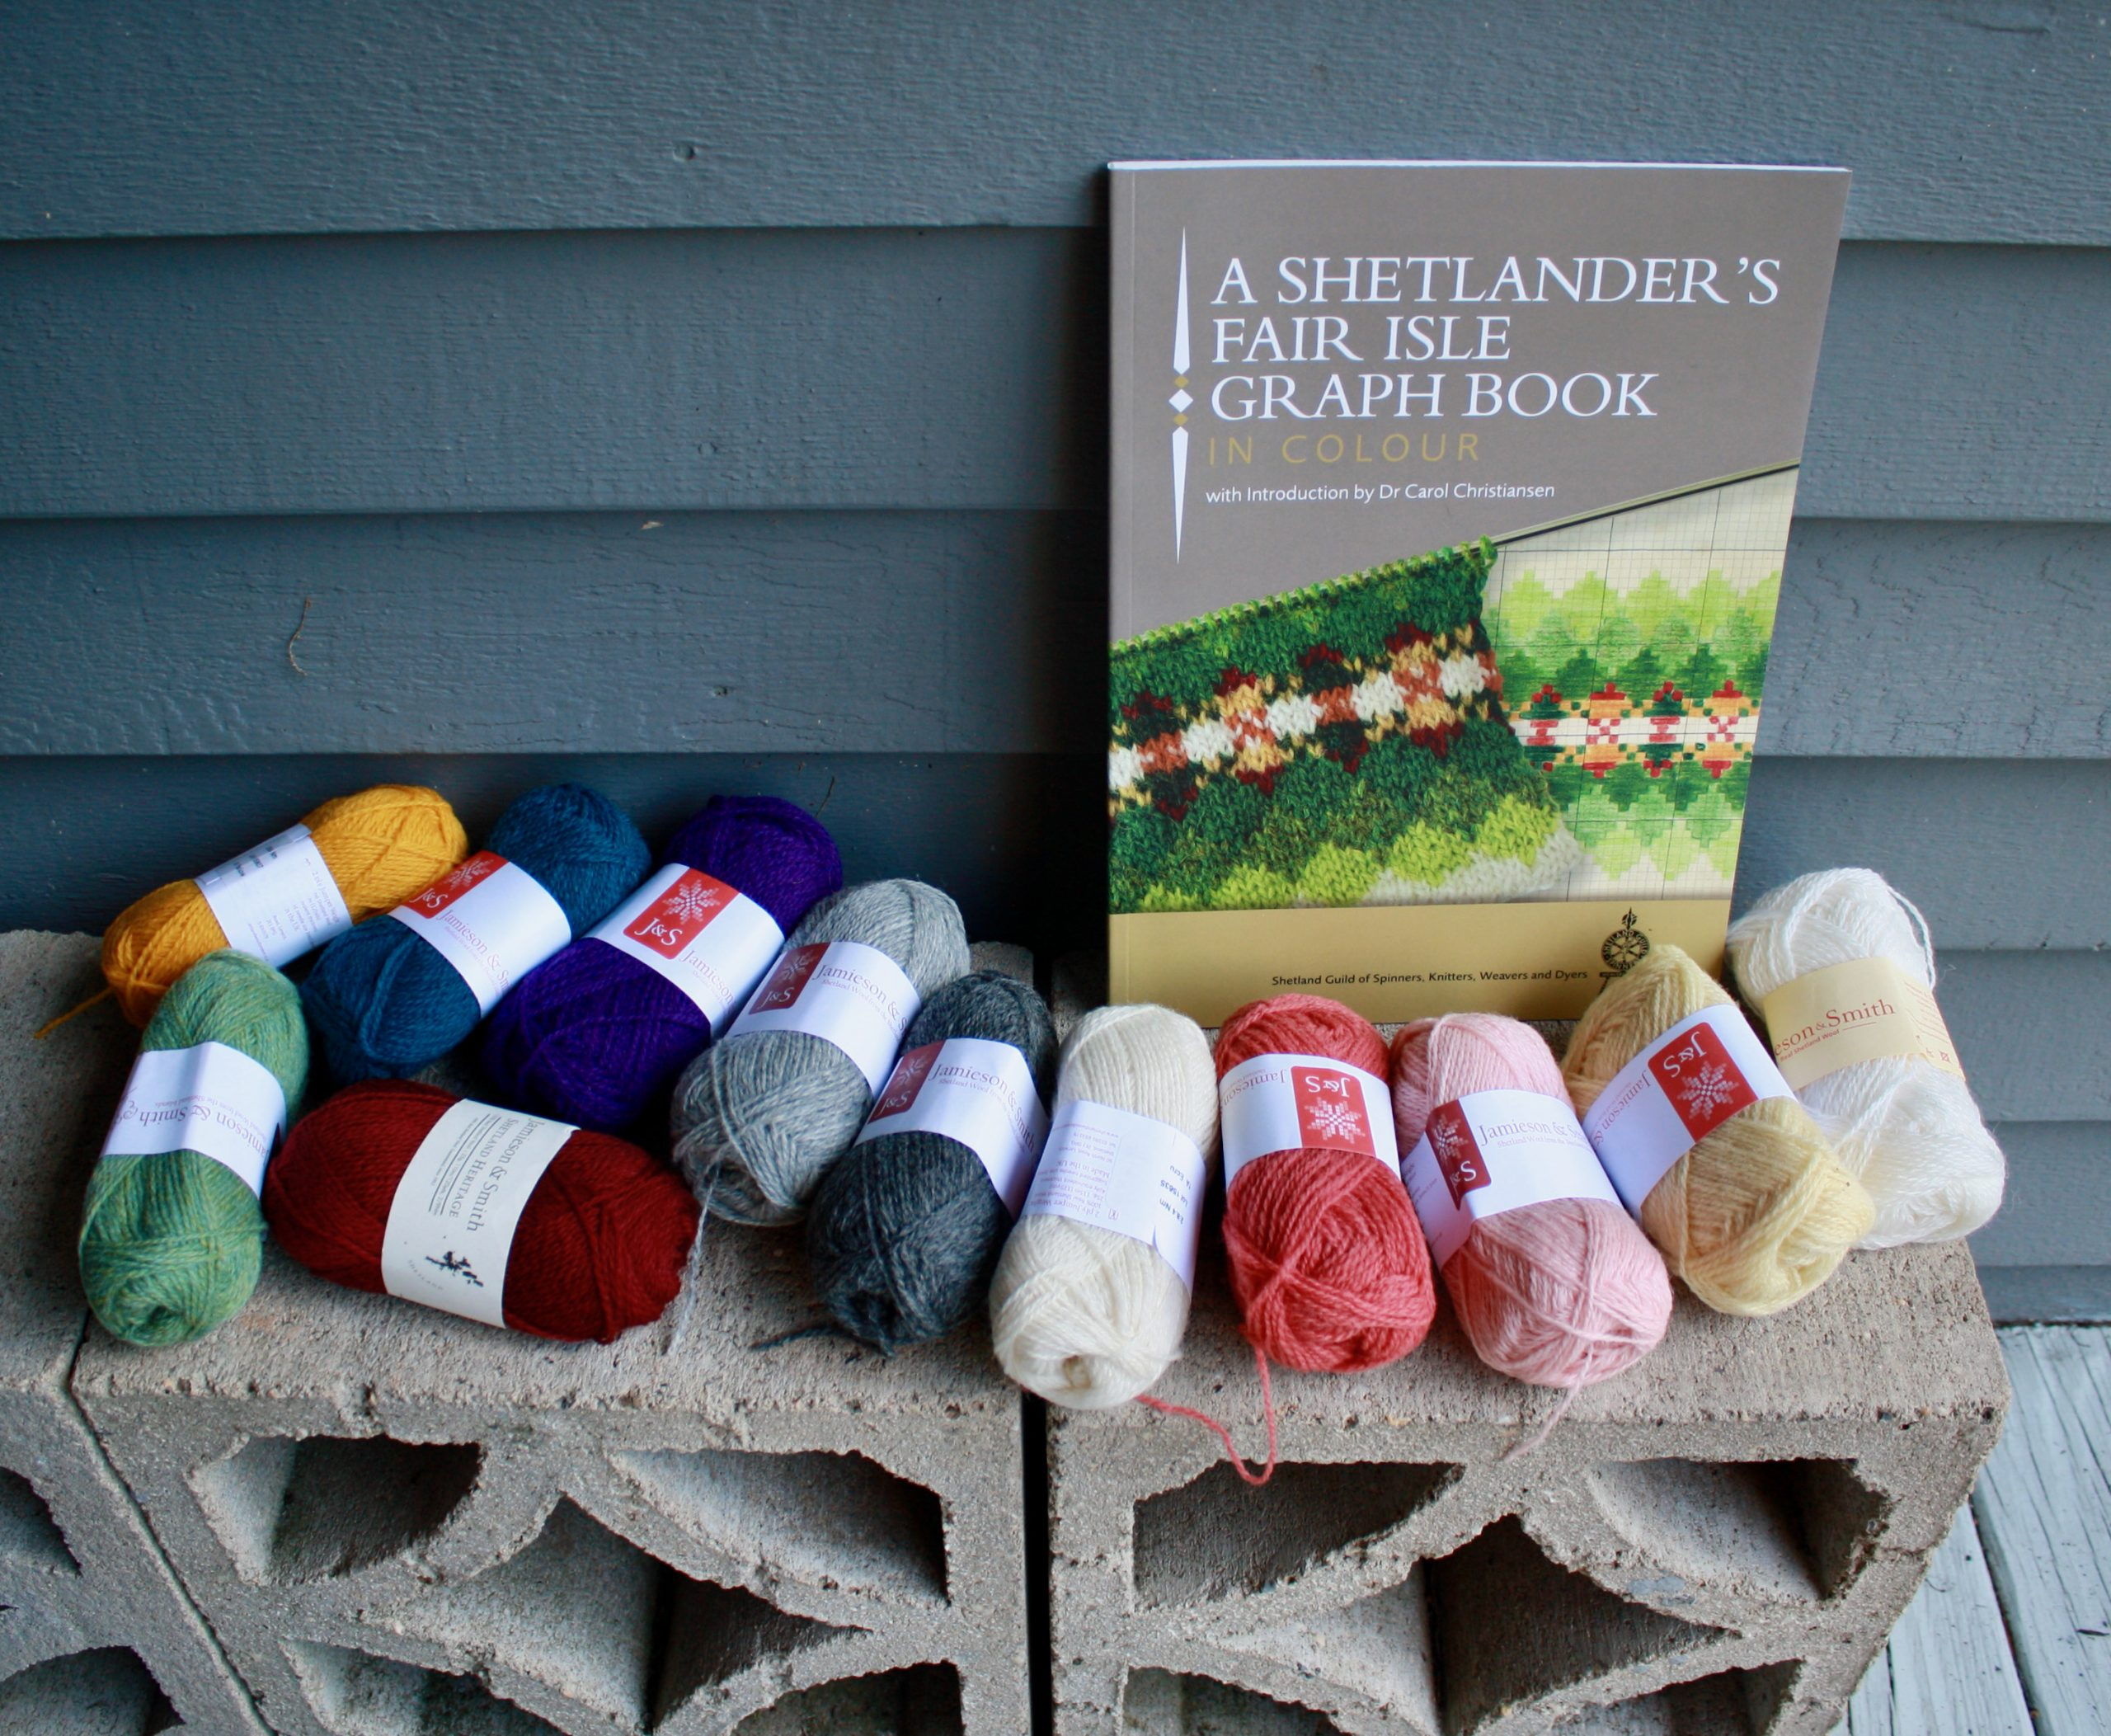 A Belated Birthday Gift - A Shetlanders Fair Isle Graph Book and JS Yarn 04-16-21 01